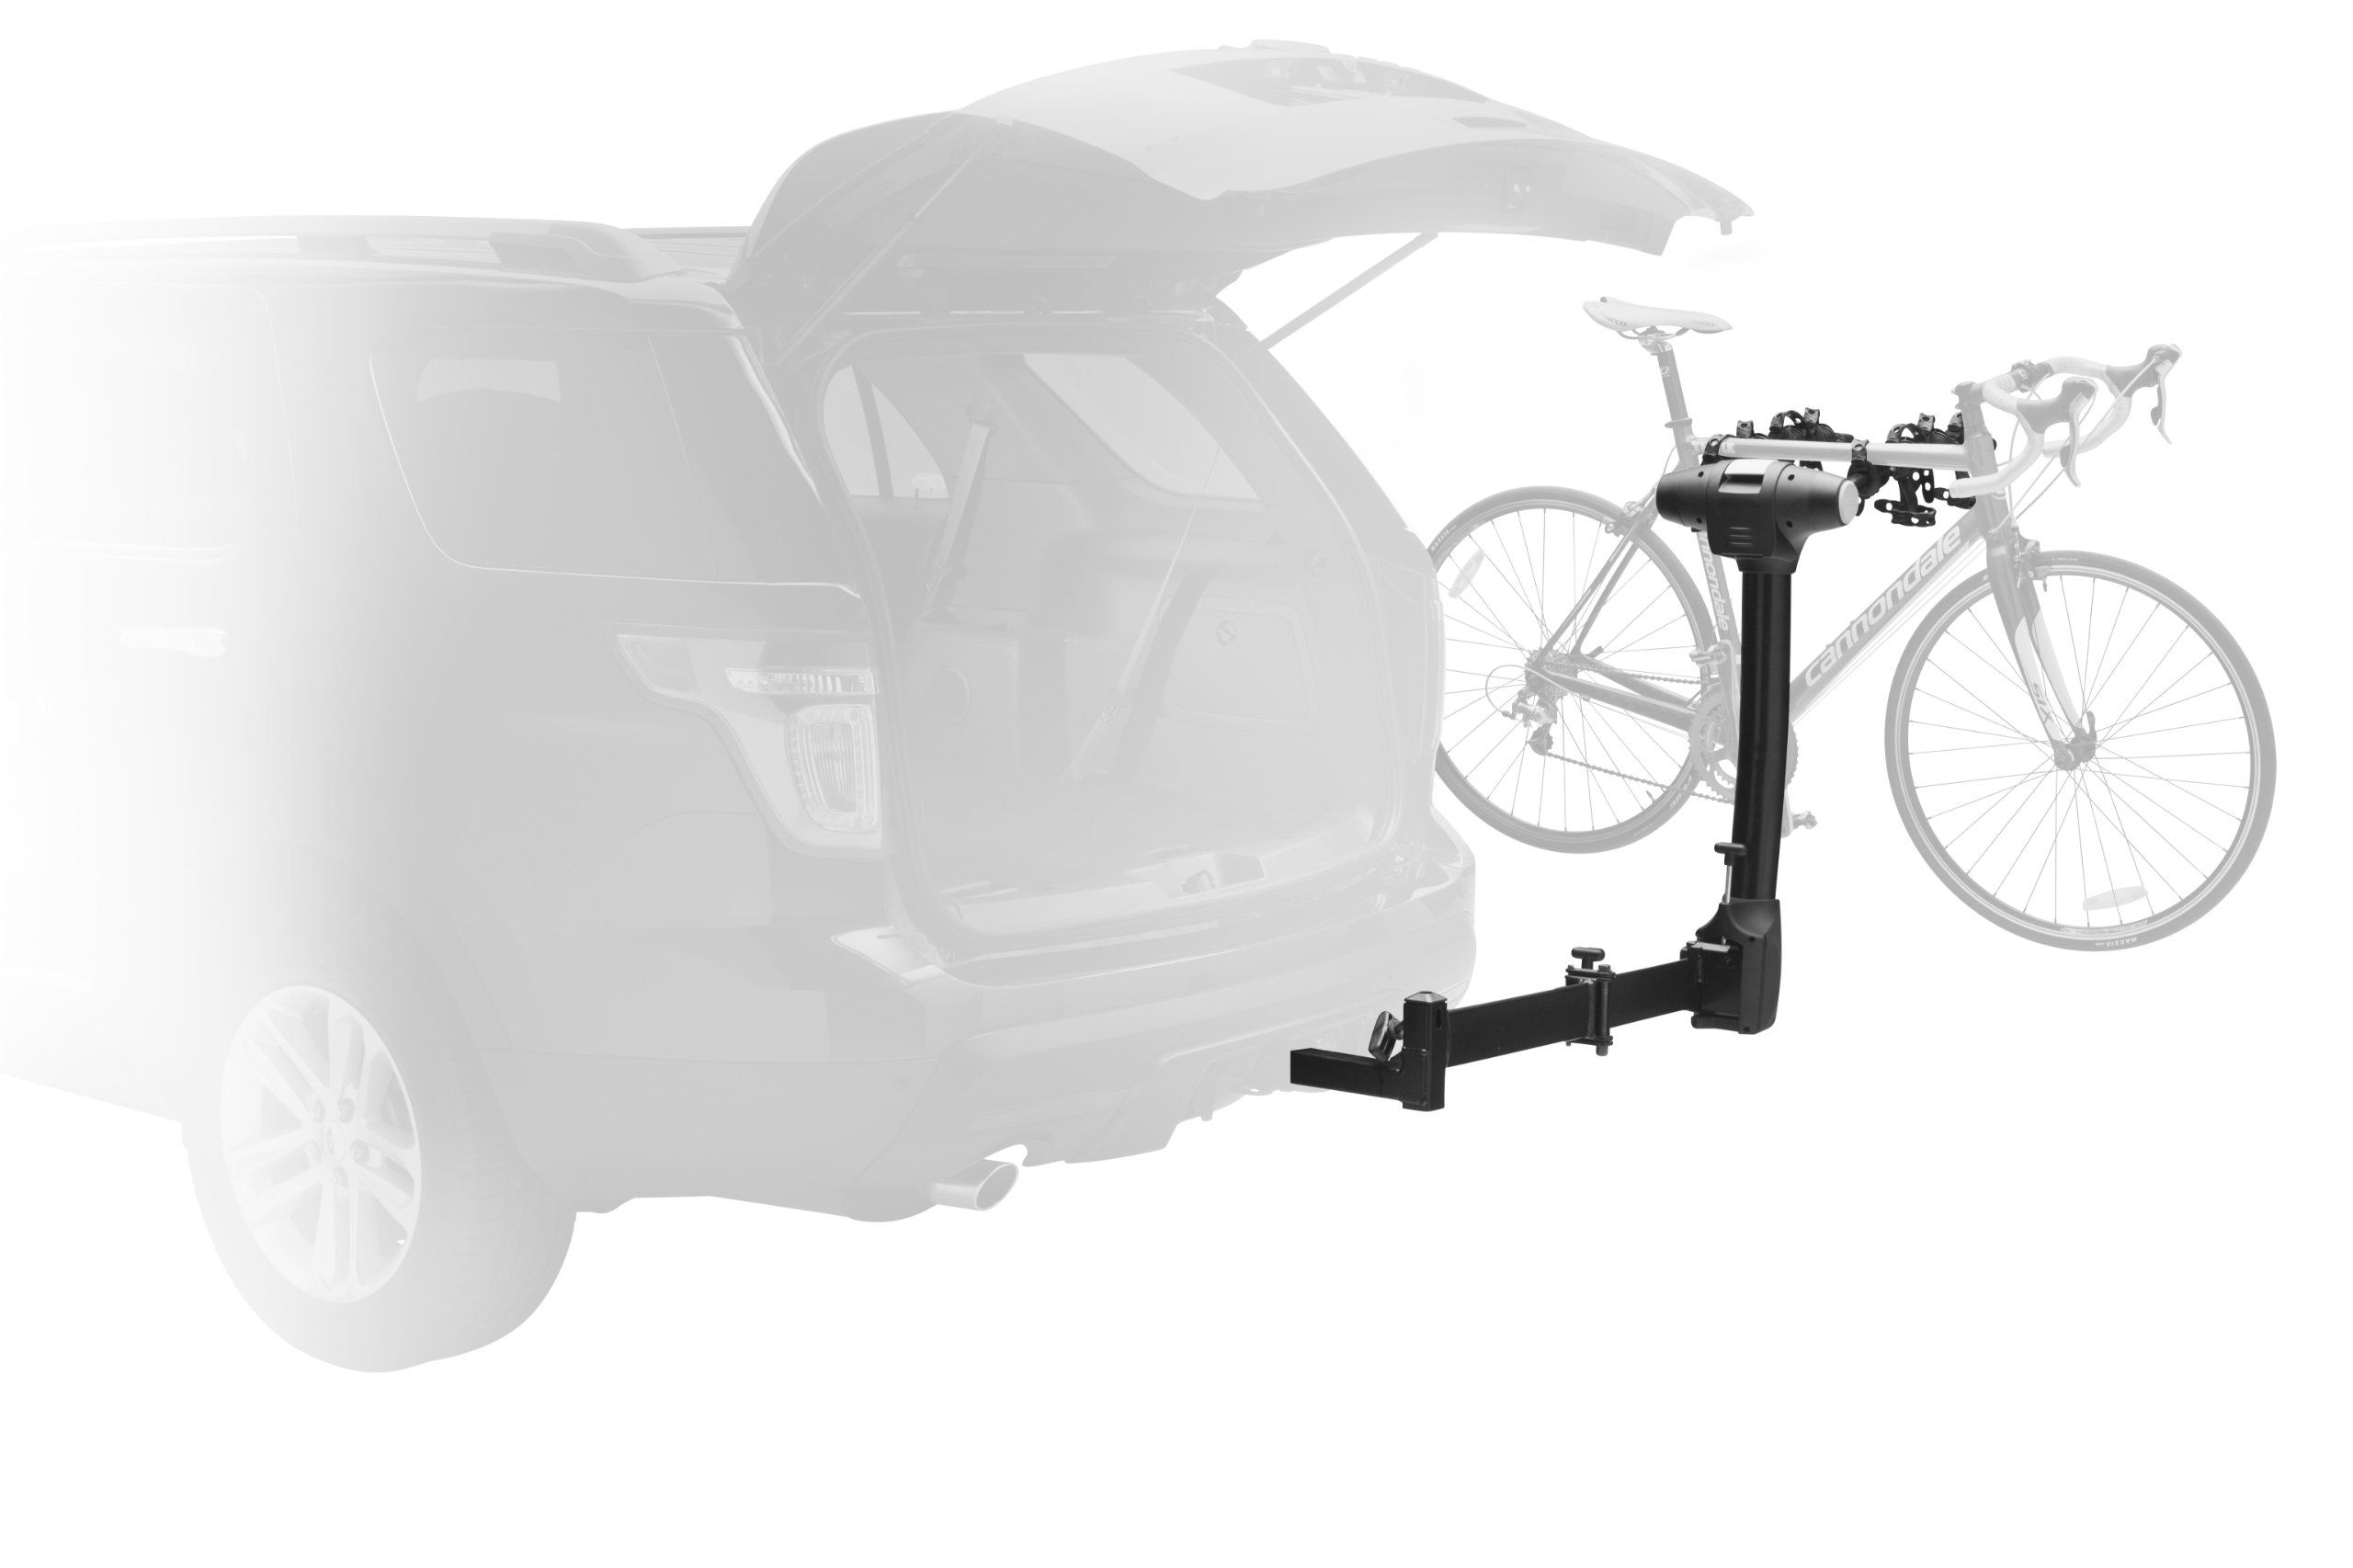 on thl carrier citycrash cycle rack mounted bike approved hang towbar thule itm